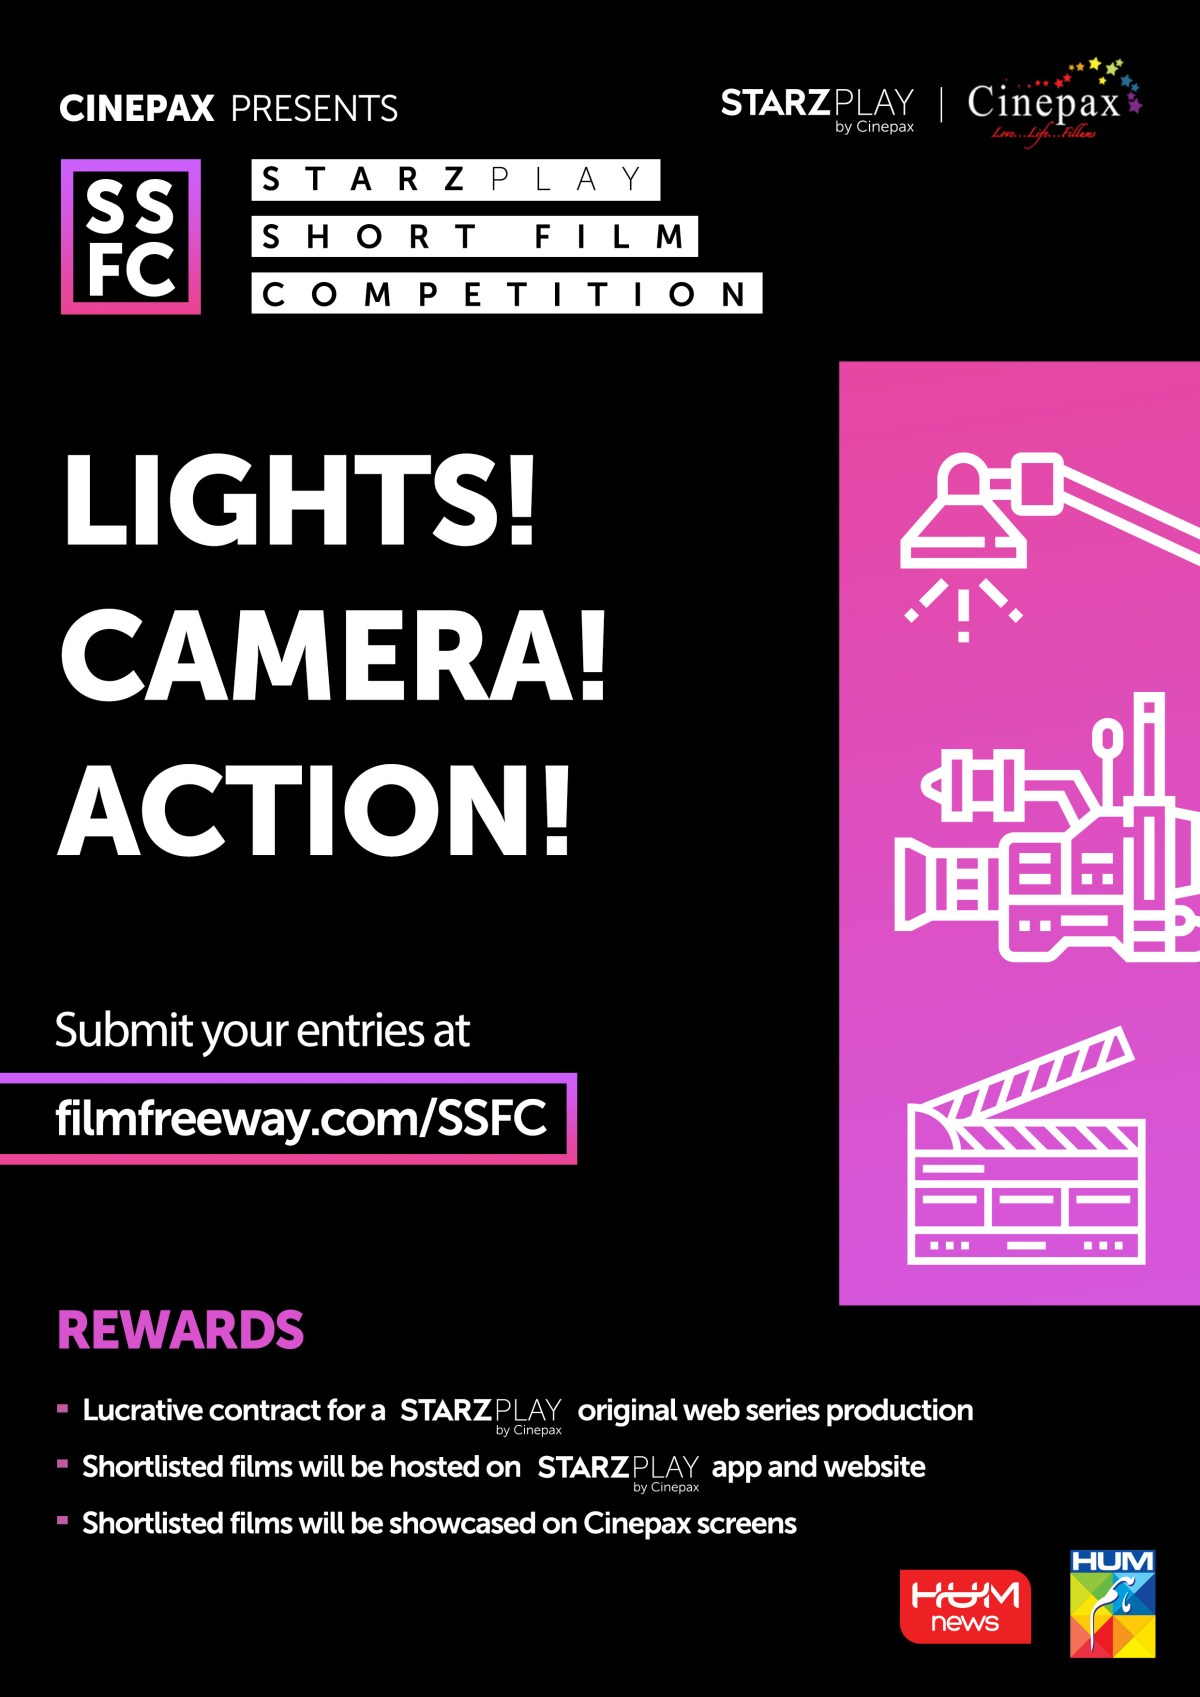 STARZ PLAY Short Film Competition